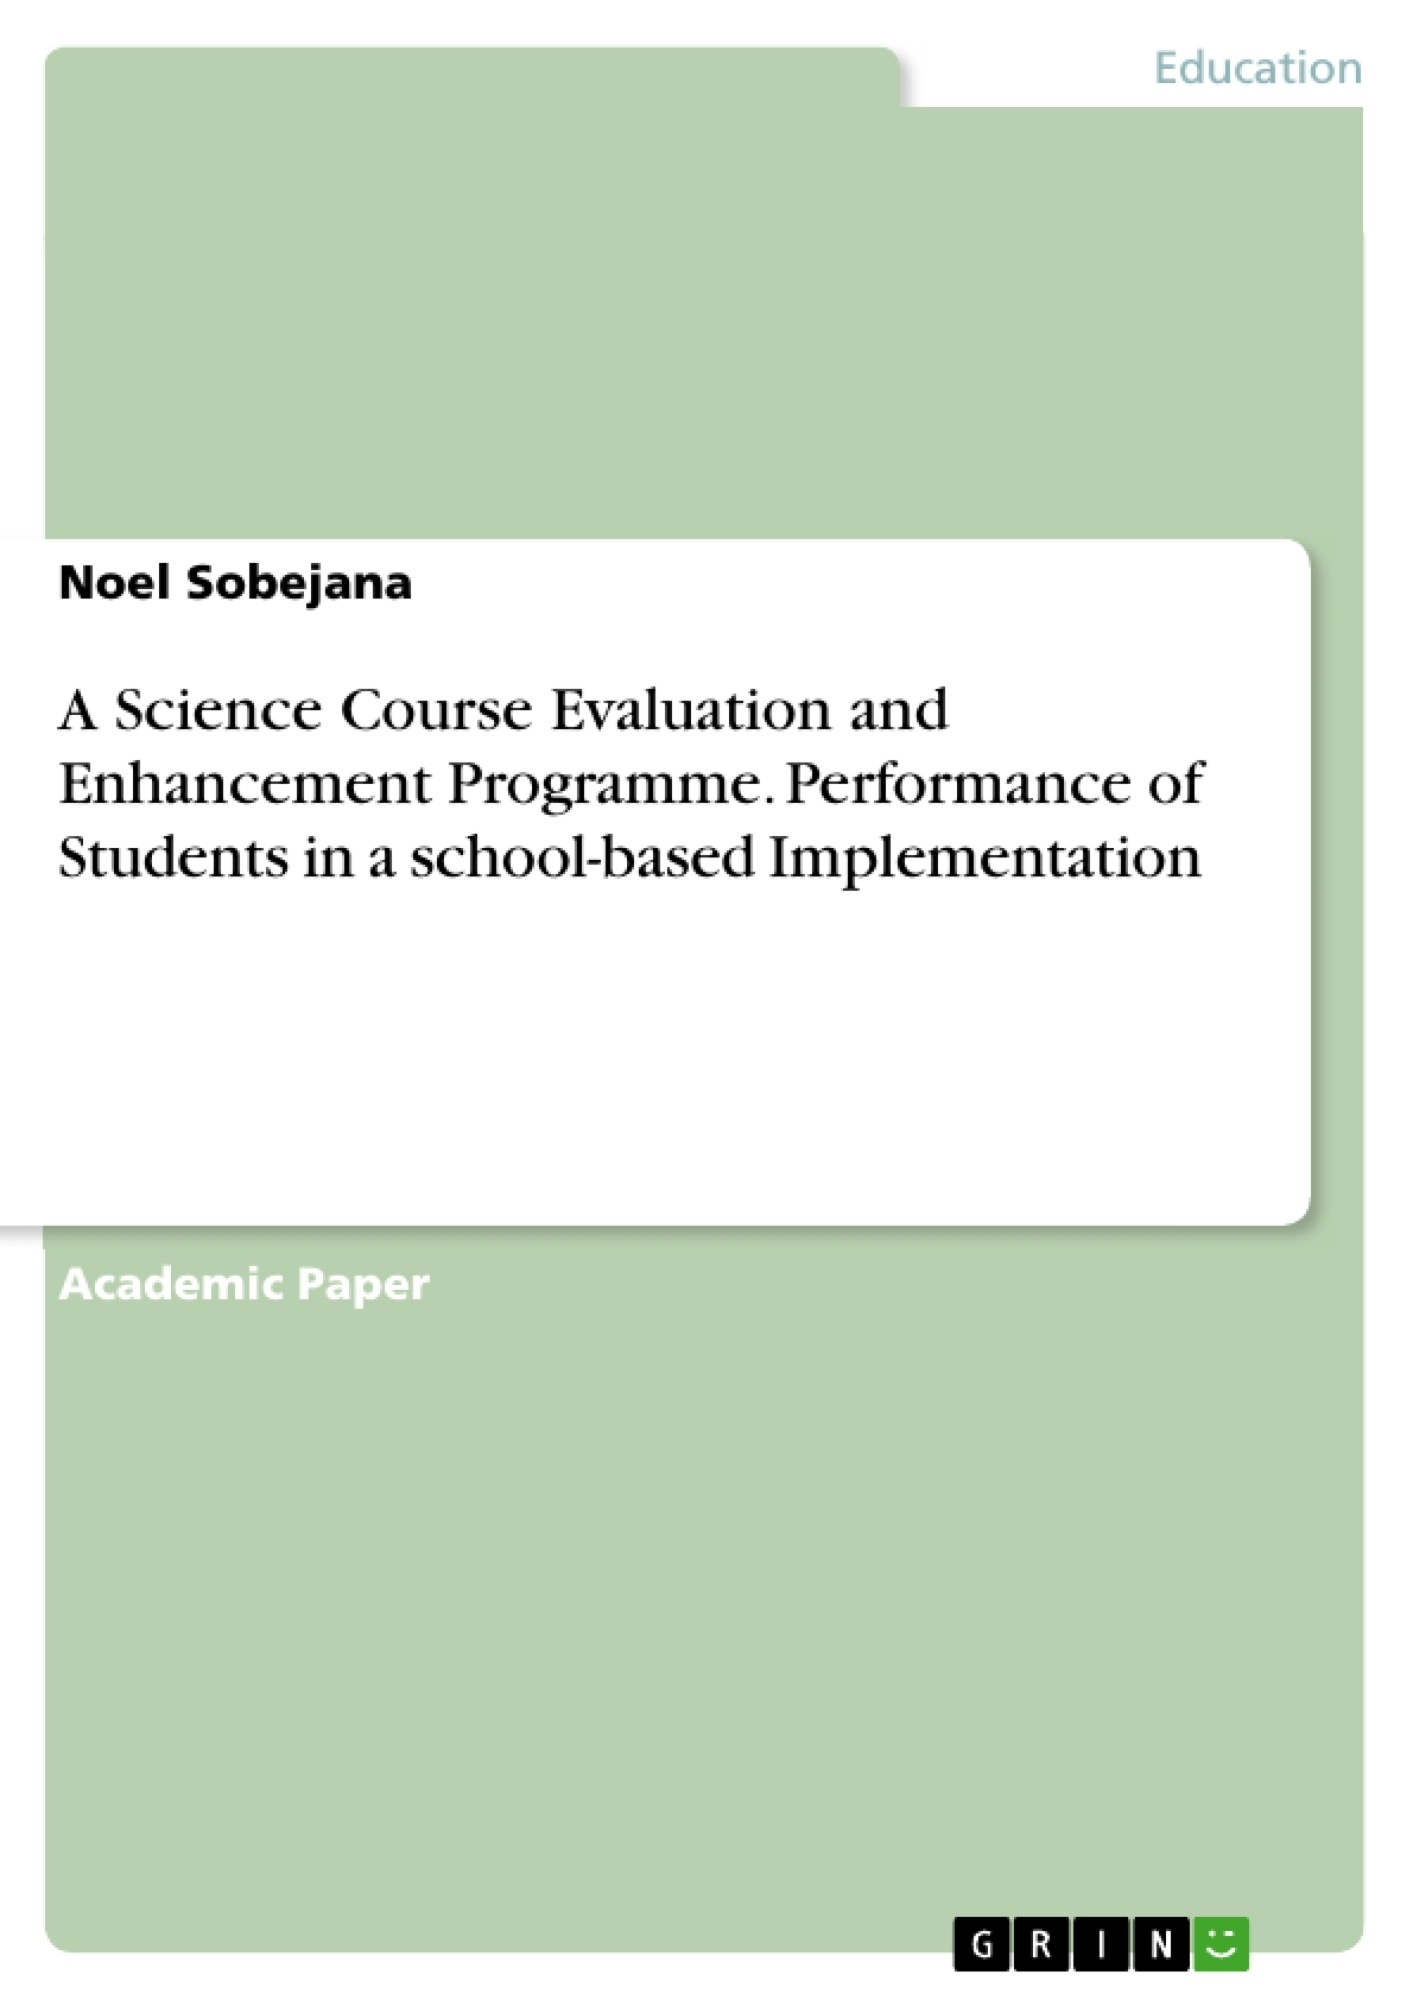 Title: A Science Course Evaluation and Enhancement Programme. Performance of Students in a school-based Implementation